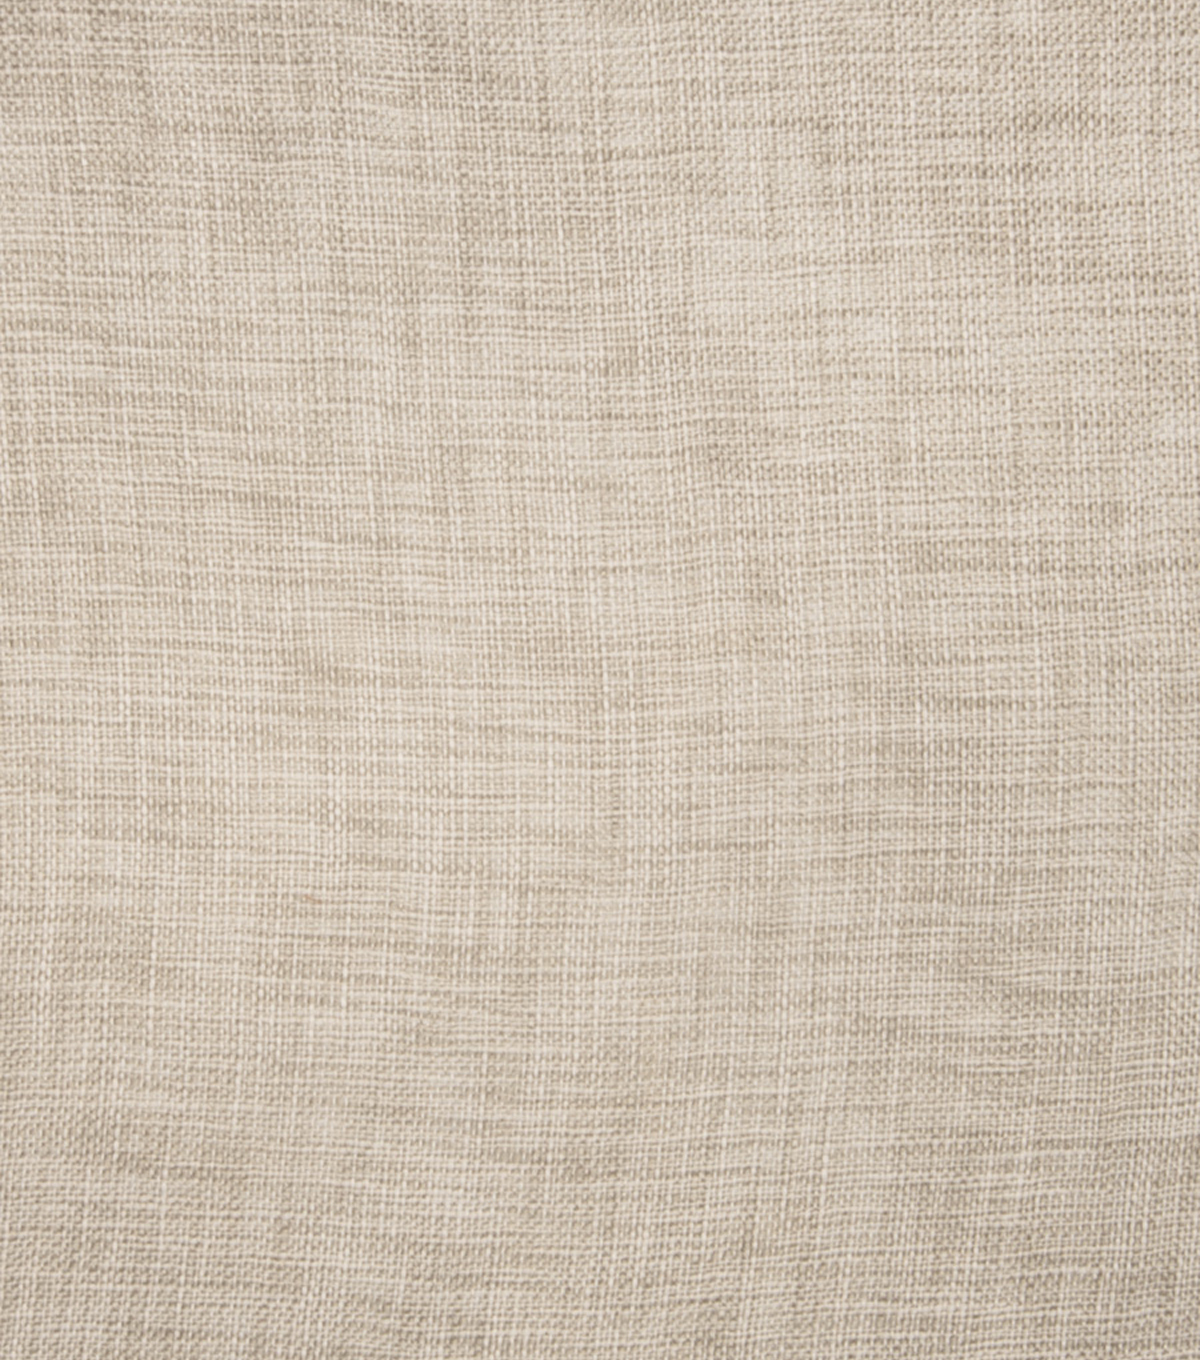 "Home Decor 8""x8"" Fabric Swatch-Eaton Square Bayonne Linen"